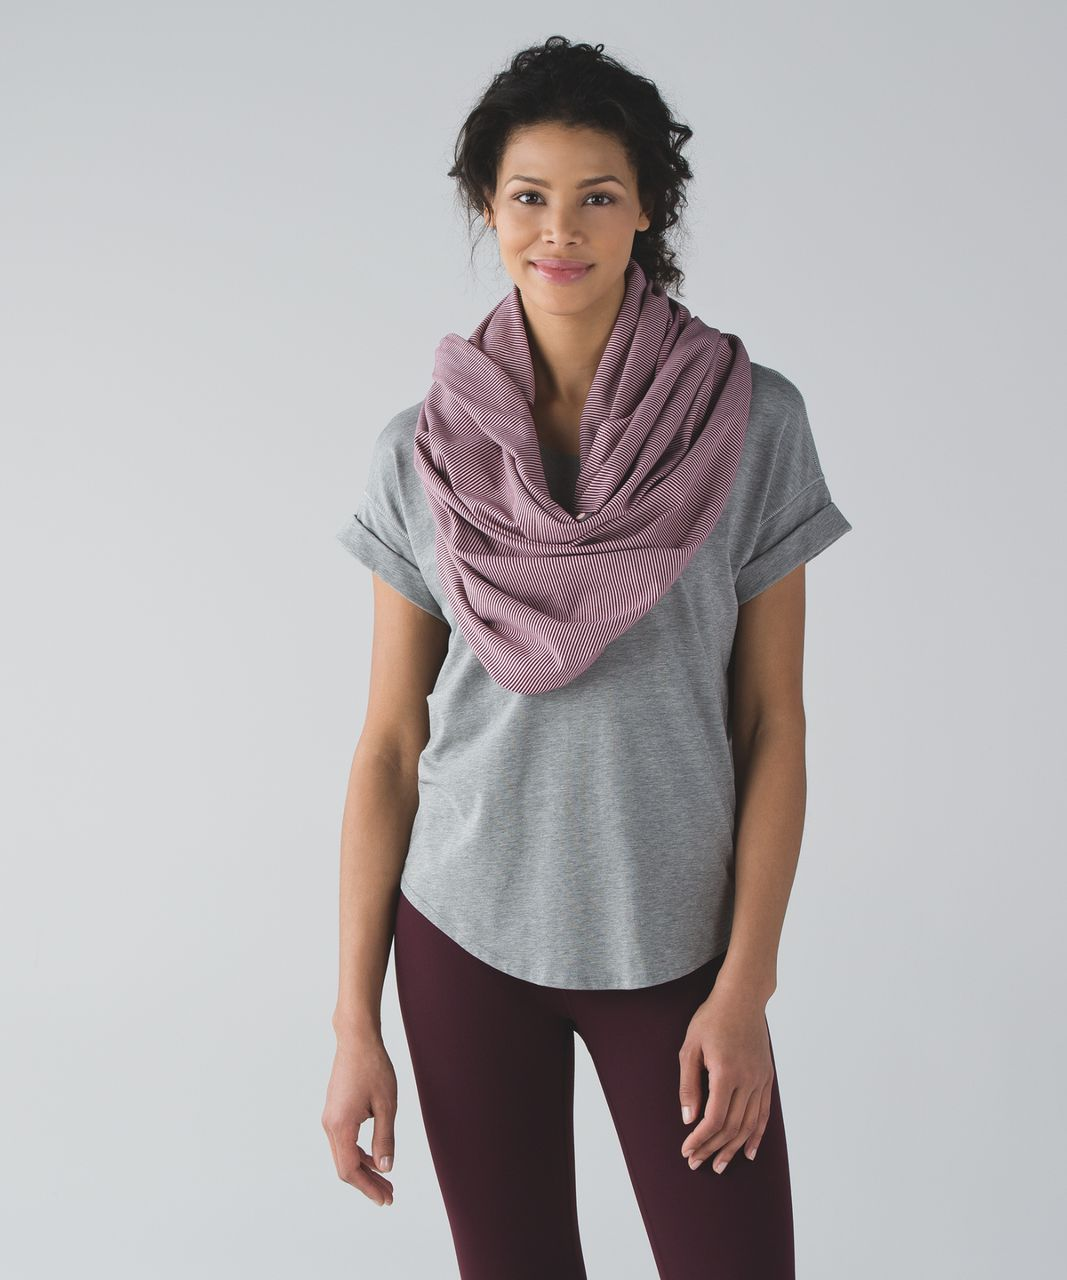 Lululemon Vinyasa Scarf *Rulu - Tonka Stripe Red Grape Minty Pink (First Release)